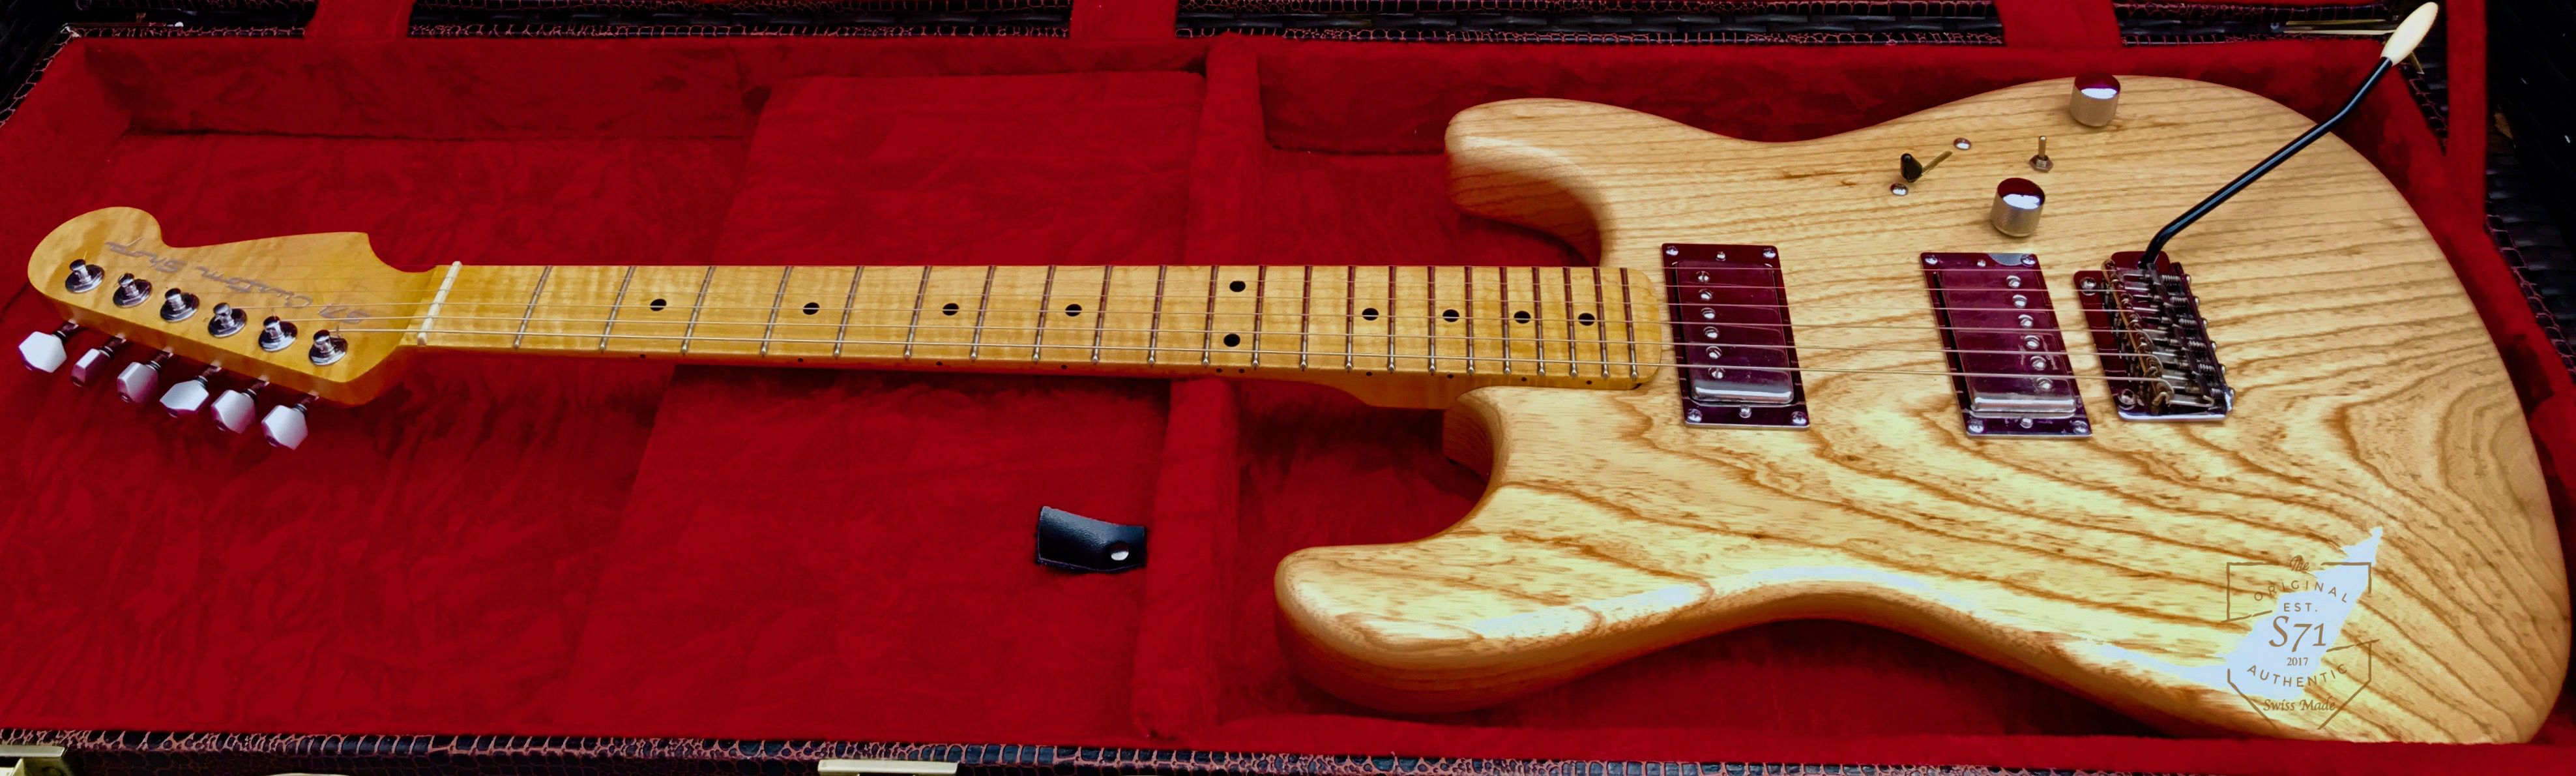 Custom Shop Stratocaster Swamp Ash In One Piece Flame Maple Neck And Dimarzio Paf Classic Humbucker Set Made By Custom Shop S71 S71guitars